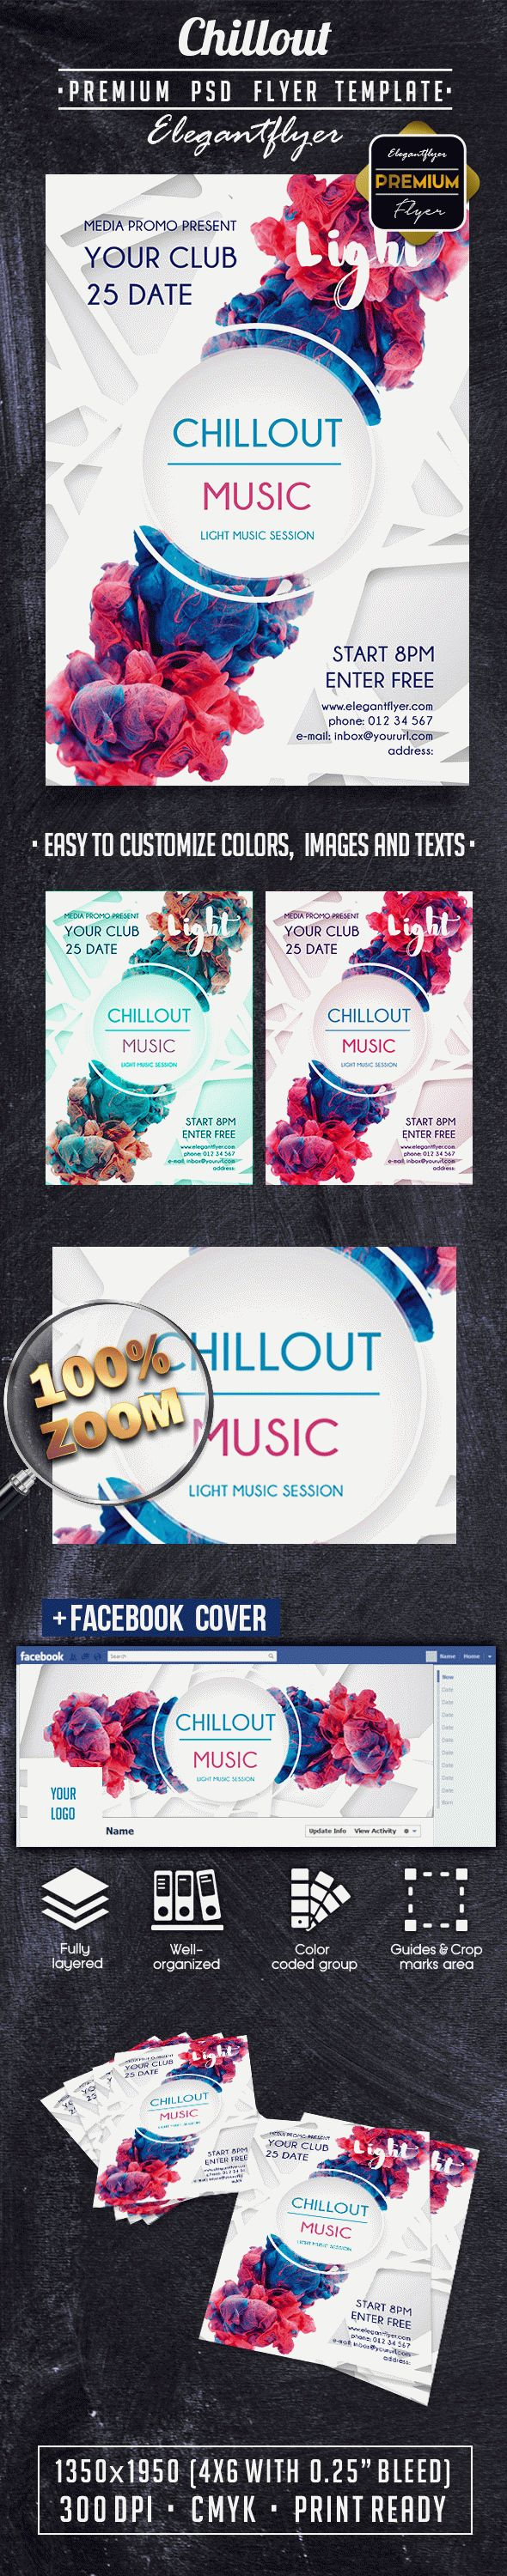 Chillout PREMIUM Flyer PSD Template